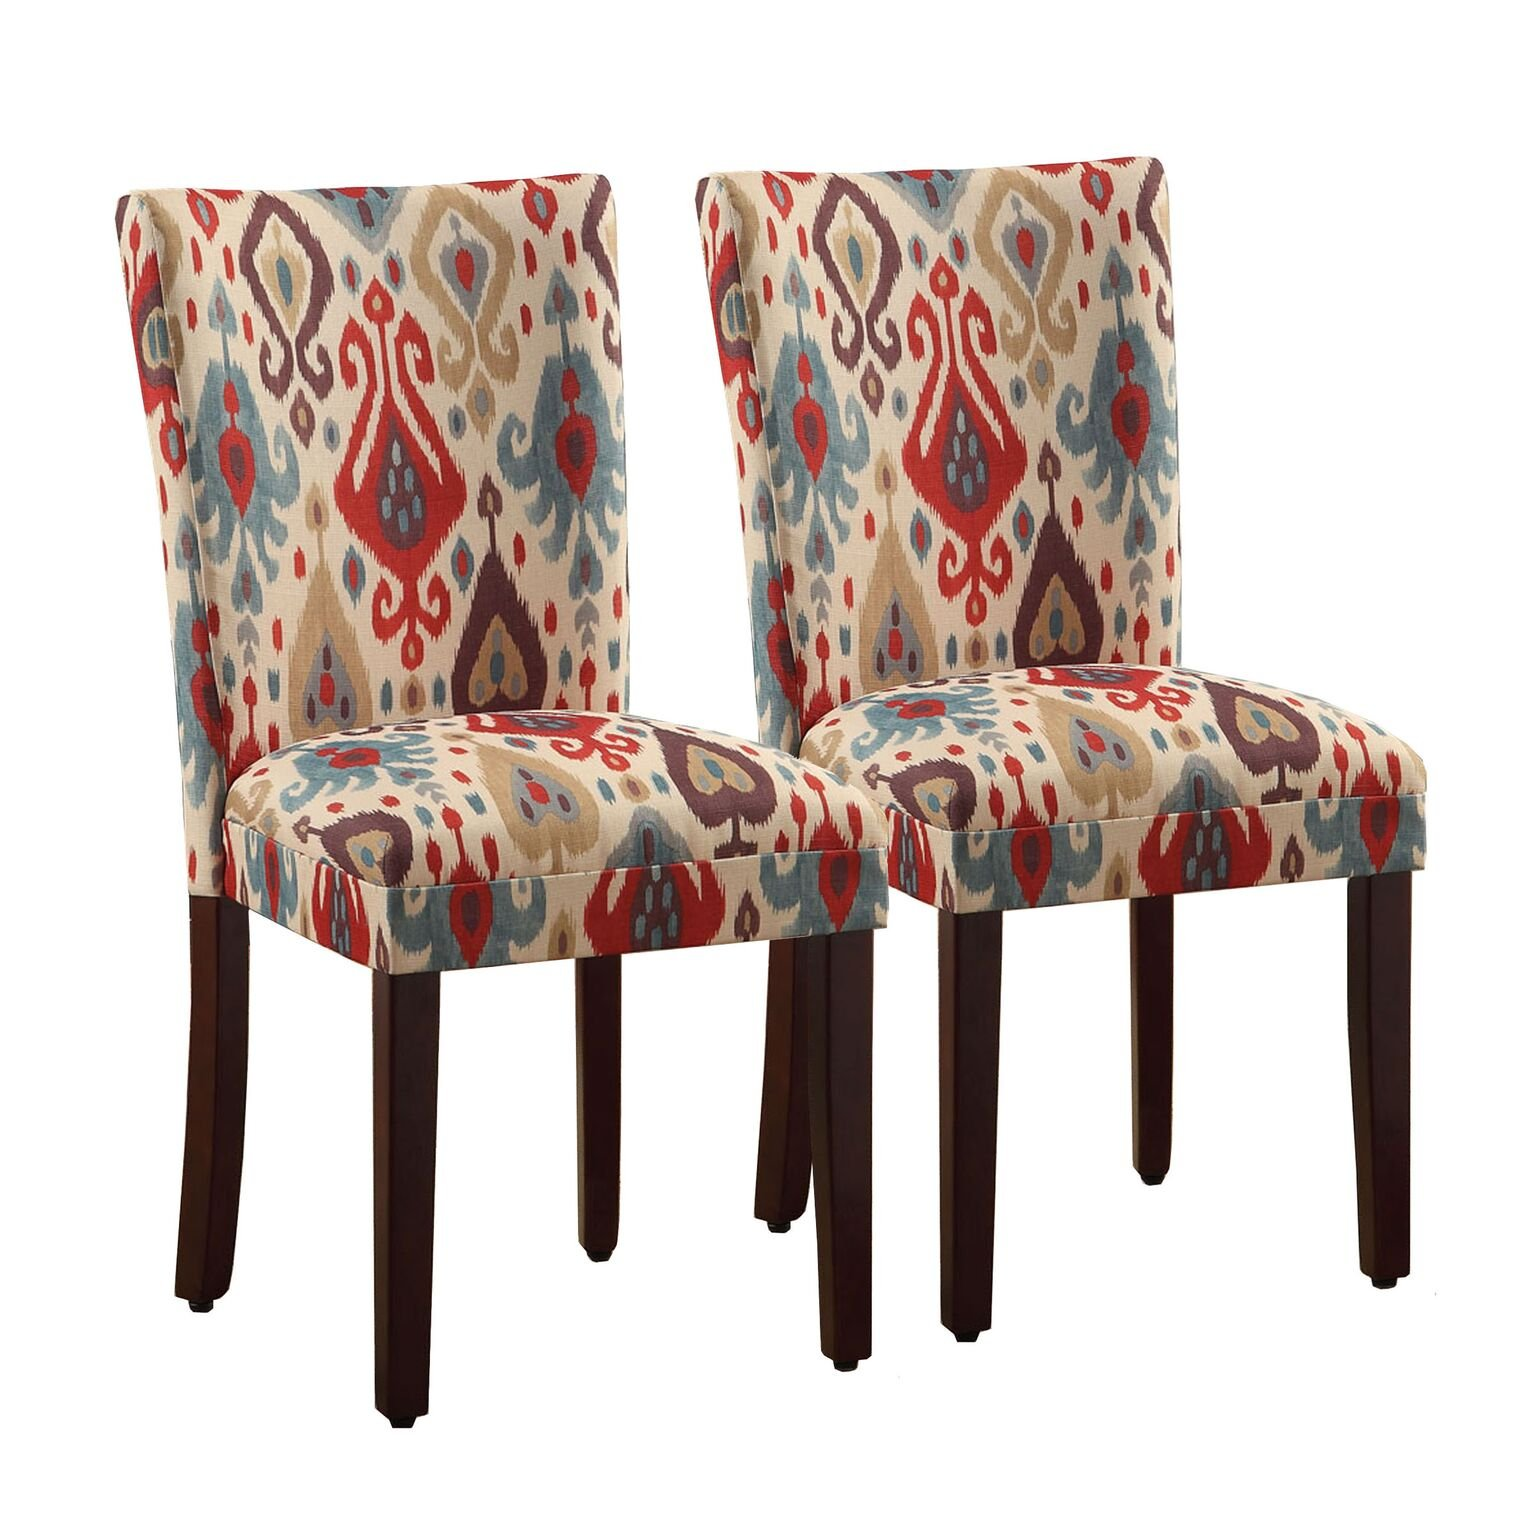 HomePop Parsons Upholstered Accent Dining Chair, Set of 2, Sienna by HomePop